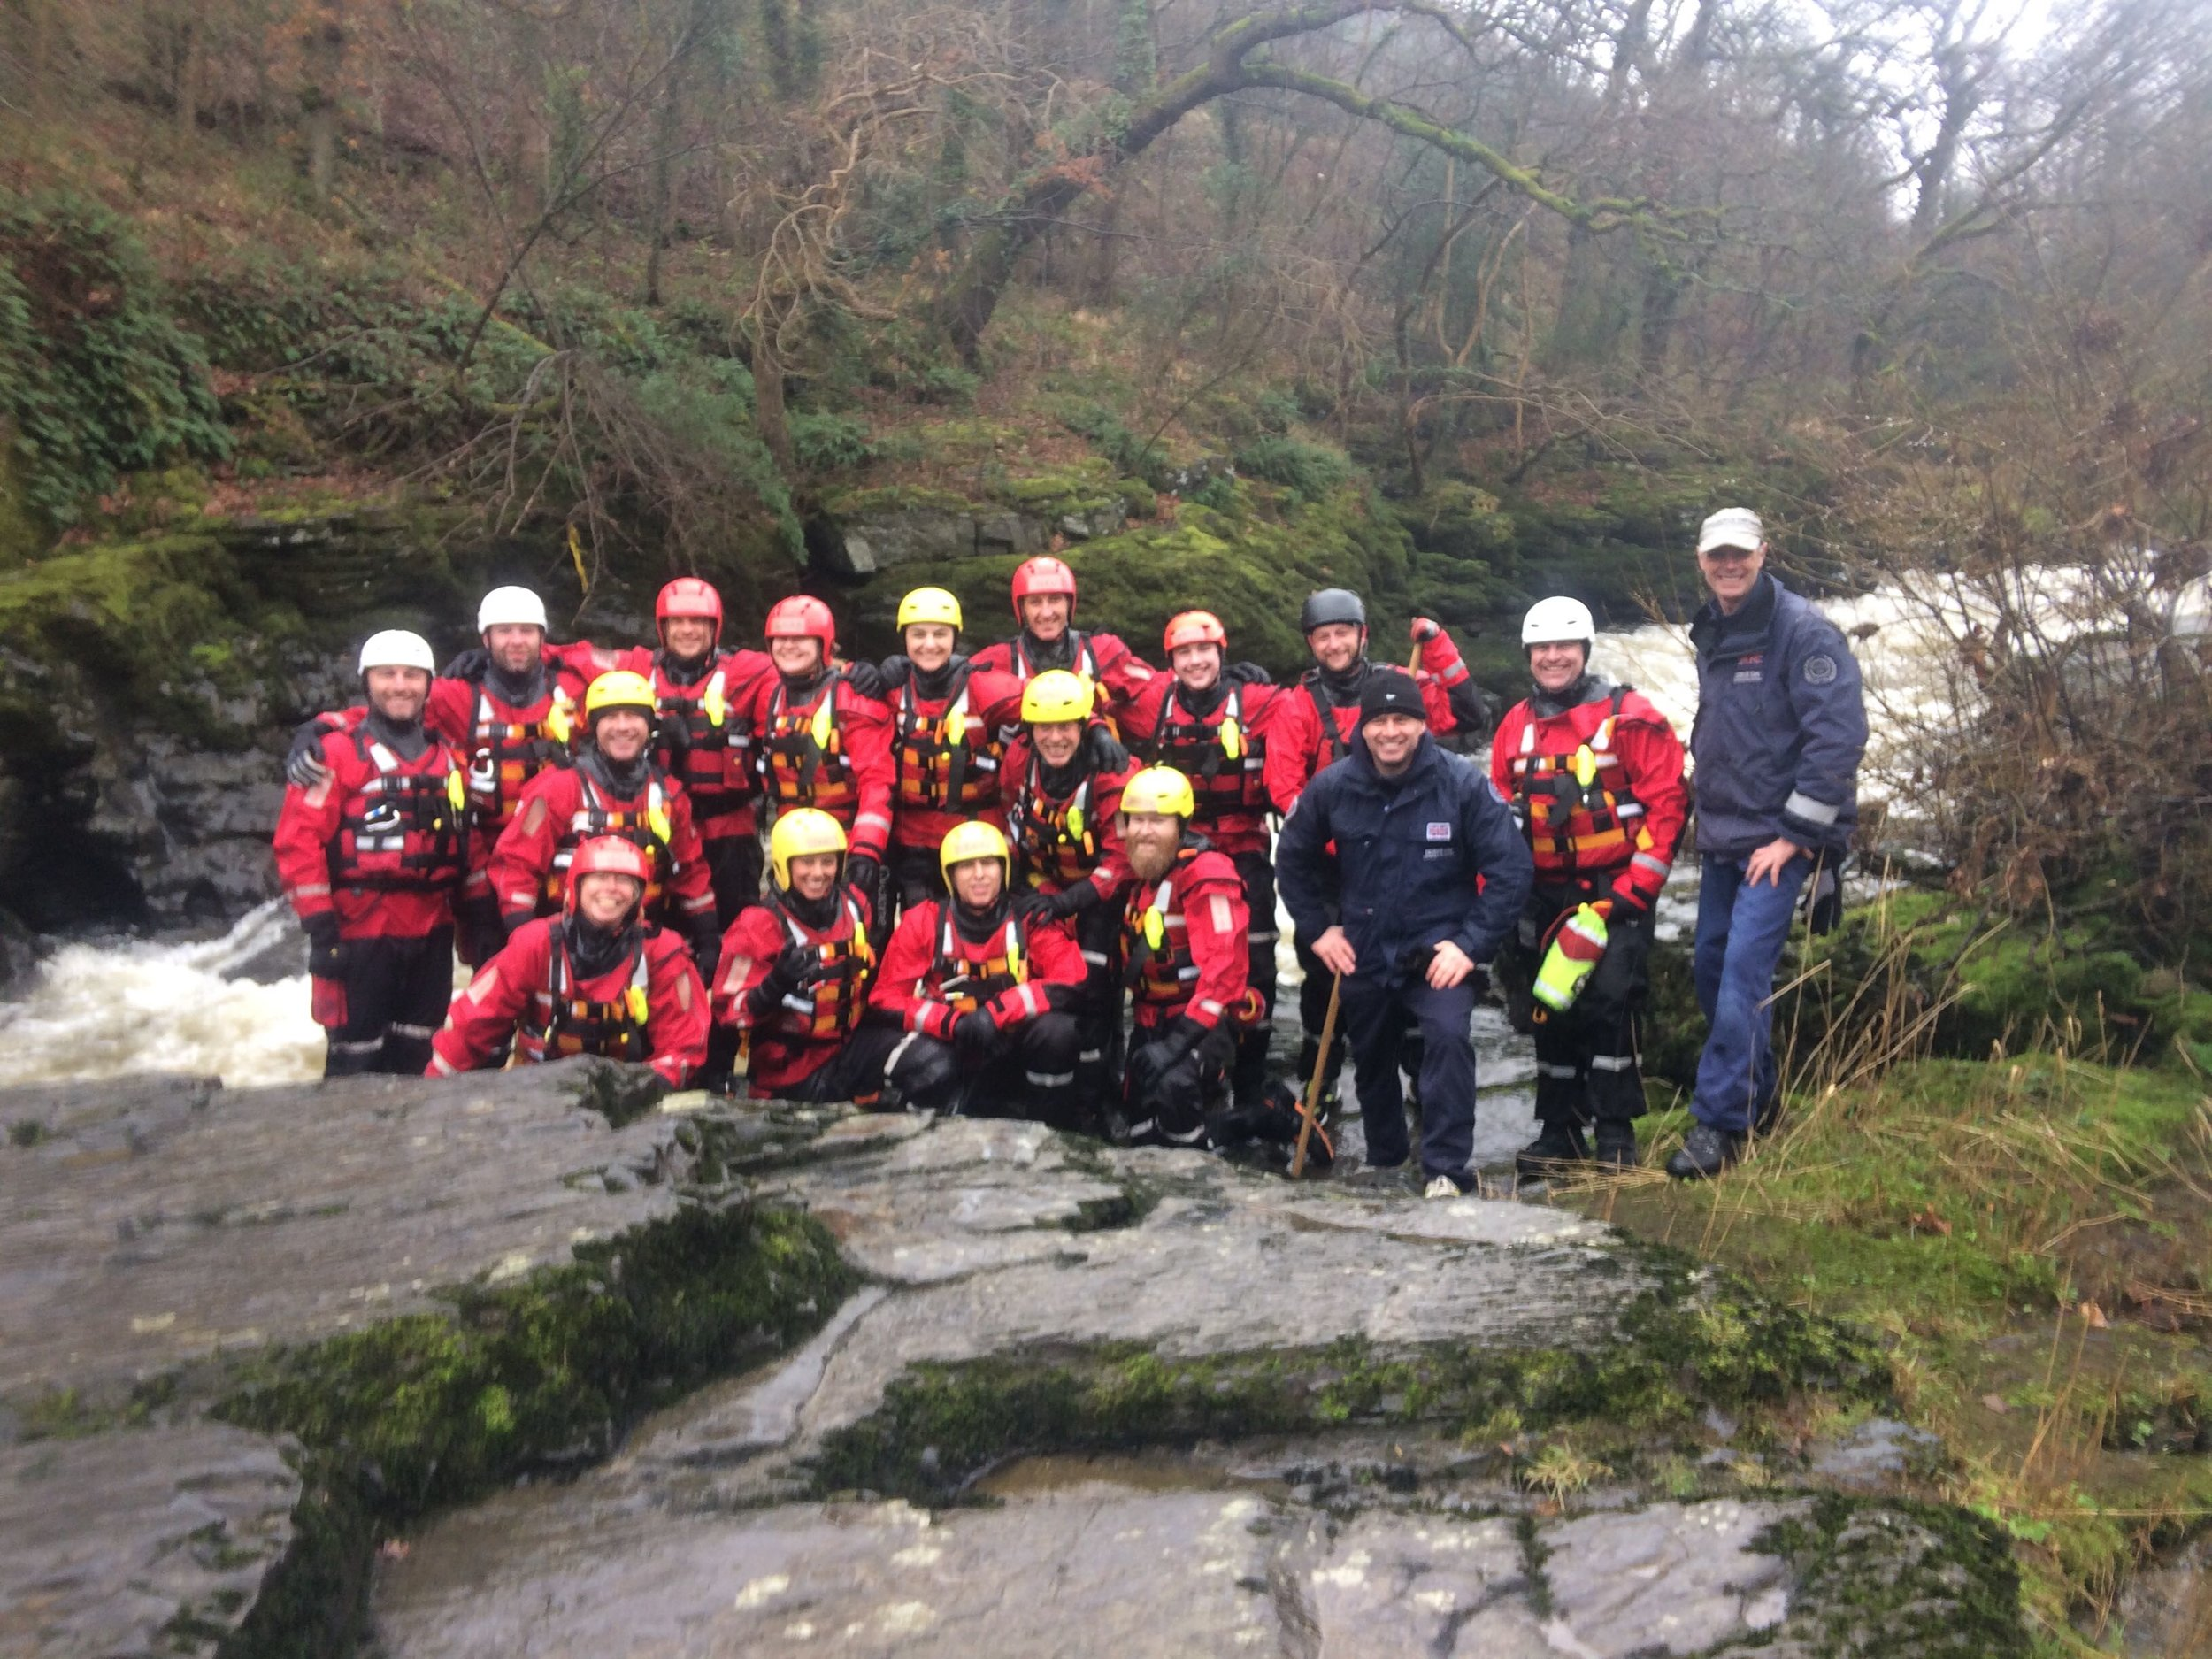 Serve On volunteers were in the River Dee in Llangollen at the weekend completing training to qualify as Swiftwater Rescue Technicians.